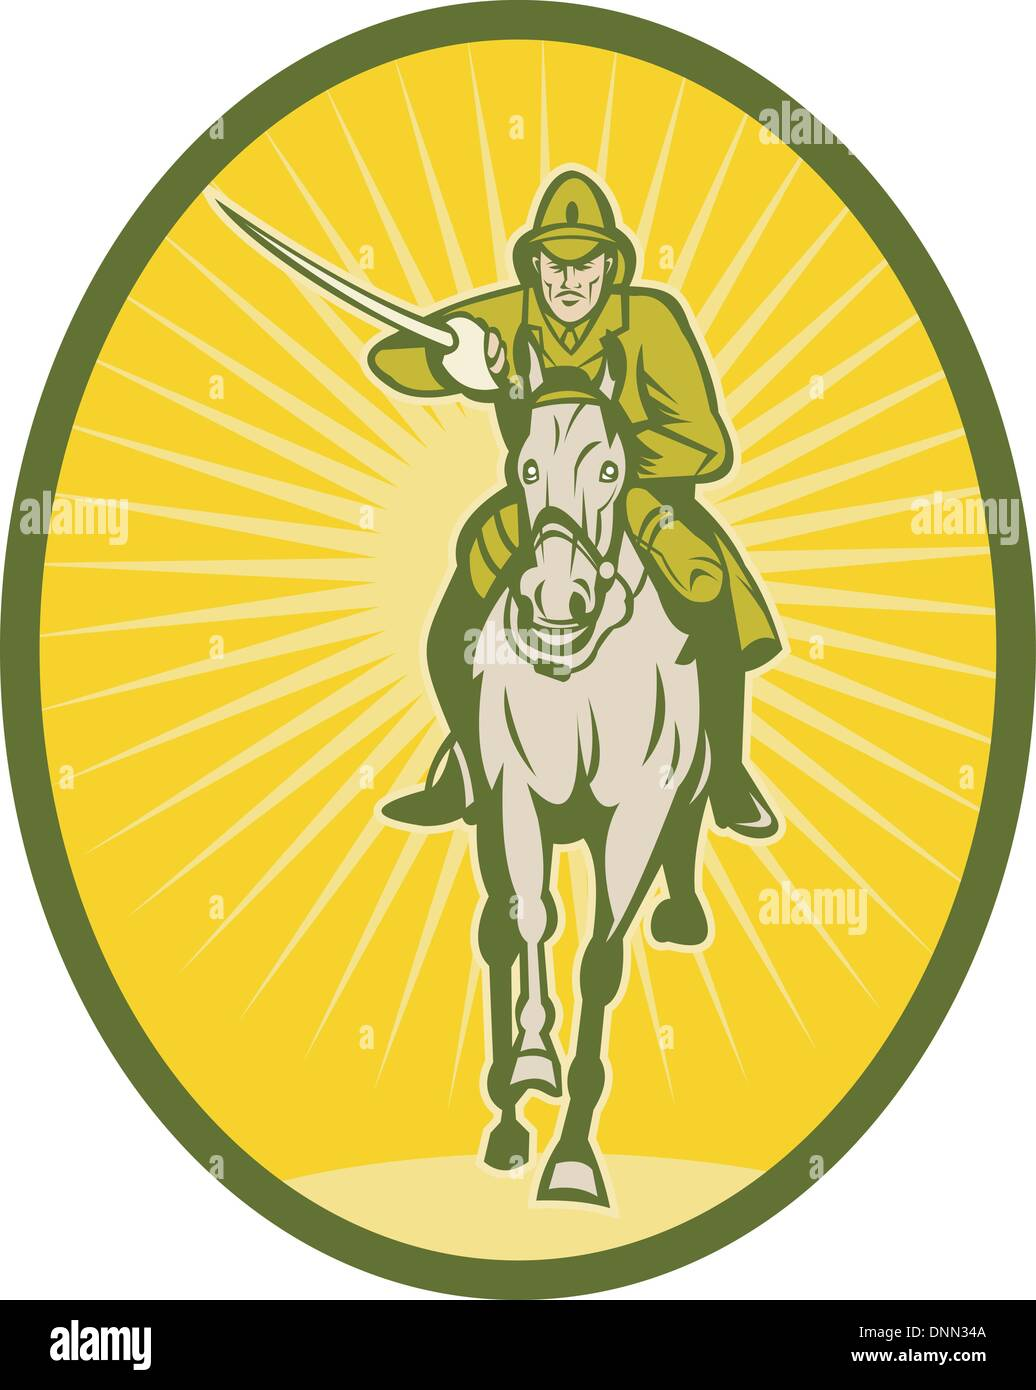 illustration of a Hussar lighthorseman cavalry charging with sword viewed from the front - Stock Vector